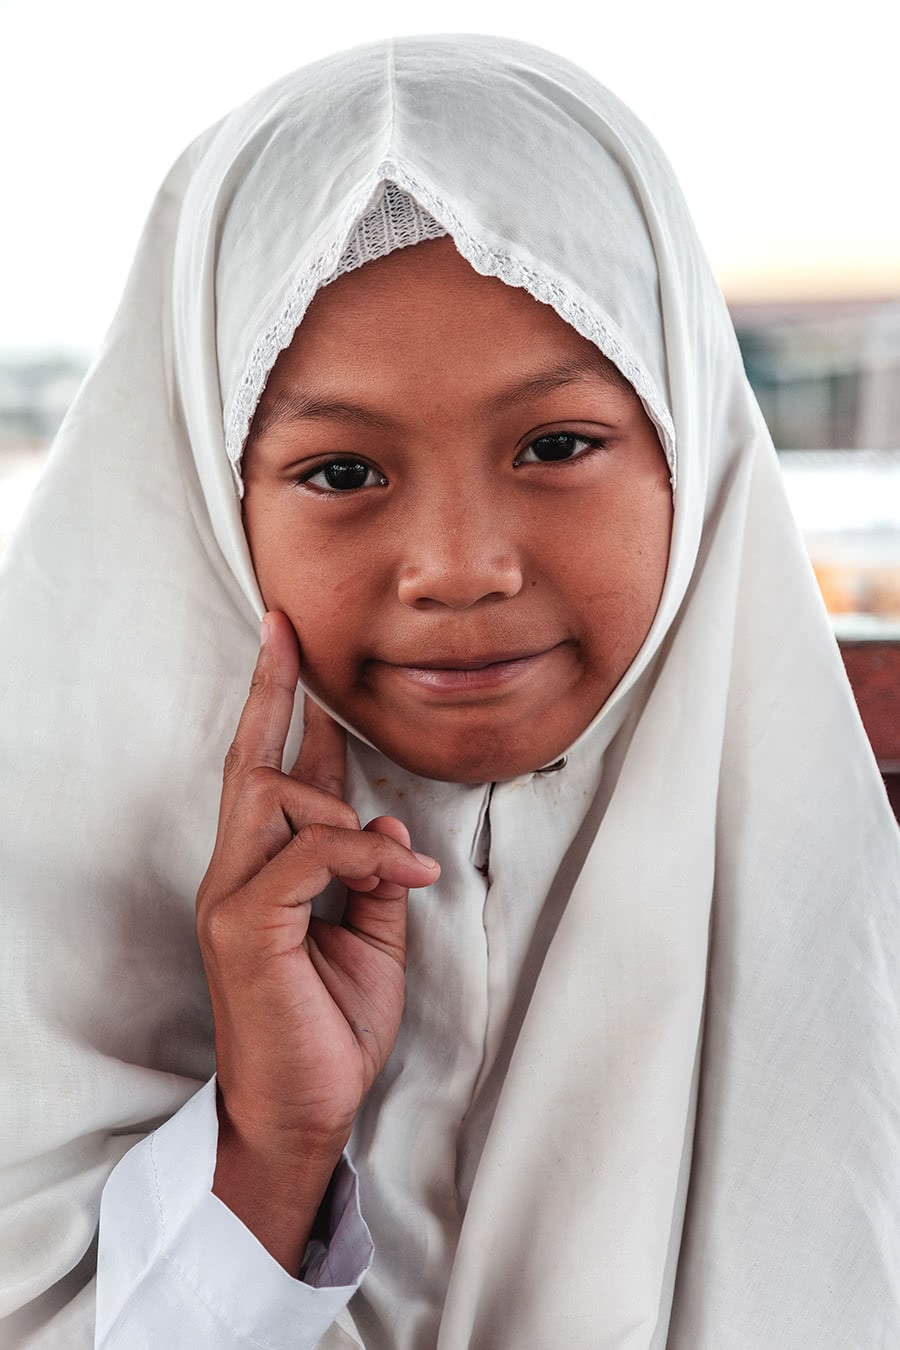 Student in Bandar Seri Begawan, Brunei wearing a muslim headscarf.